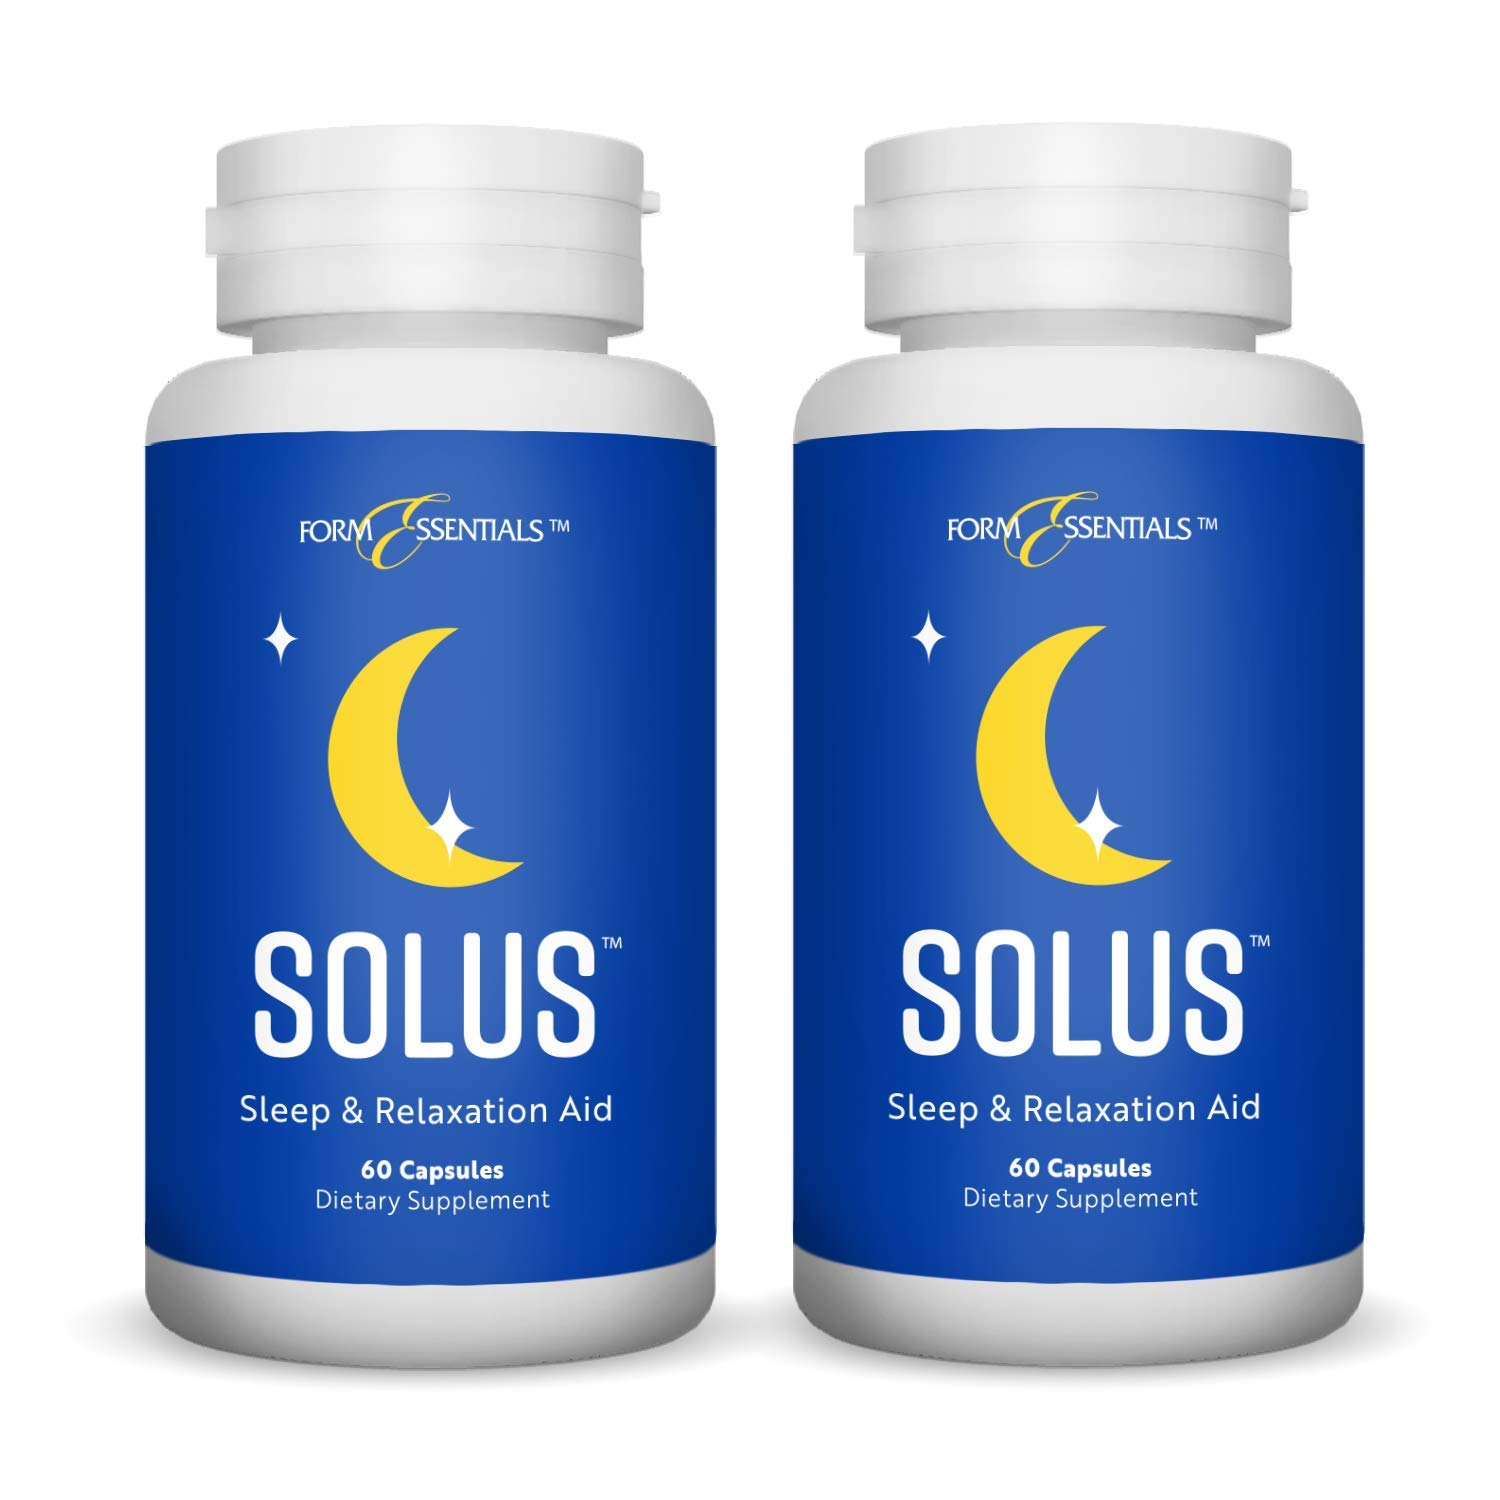 Form Essentials, Solus, All Natural Herbal Sleep Aid and Relaxation Supplement with L-Tryptophan, Melatonin, Chamomile, Valerian, 5-HTP, 60 Capsules (2 Pack)